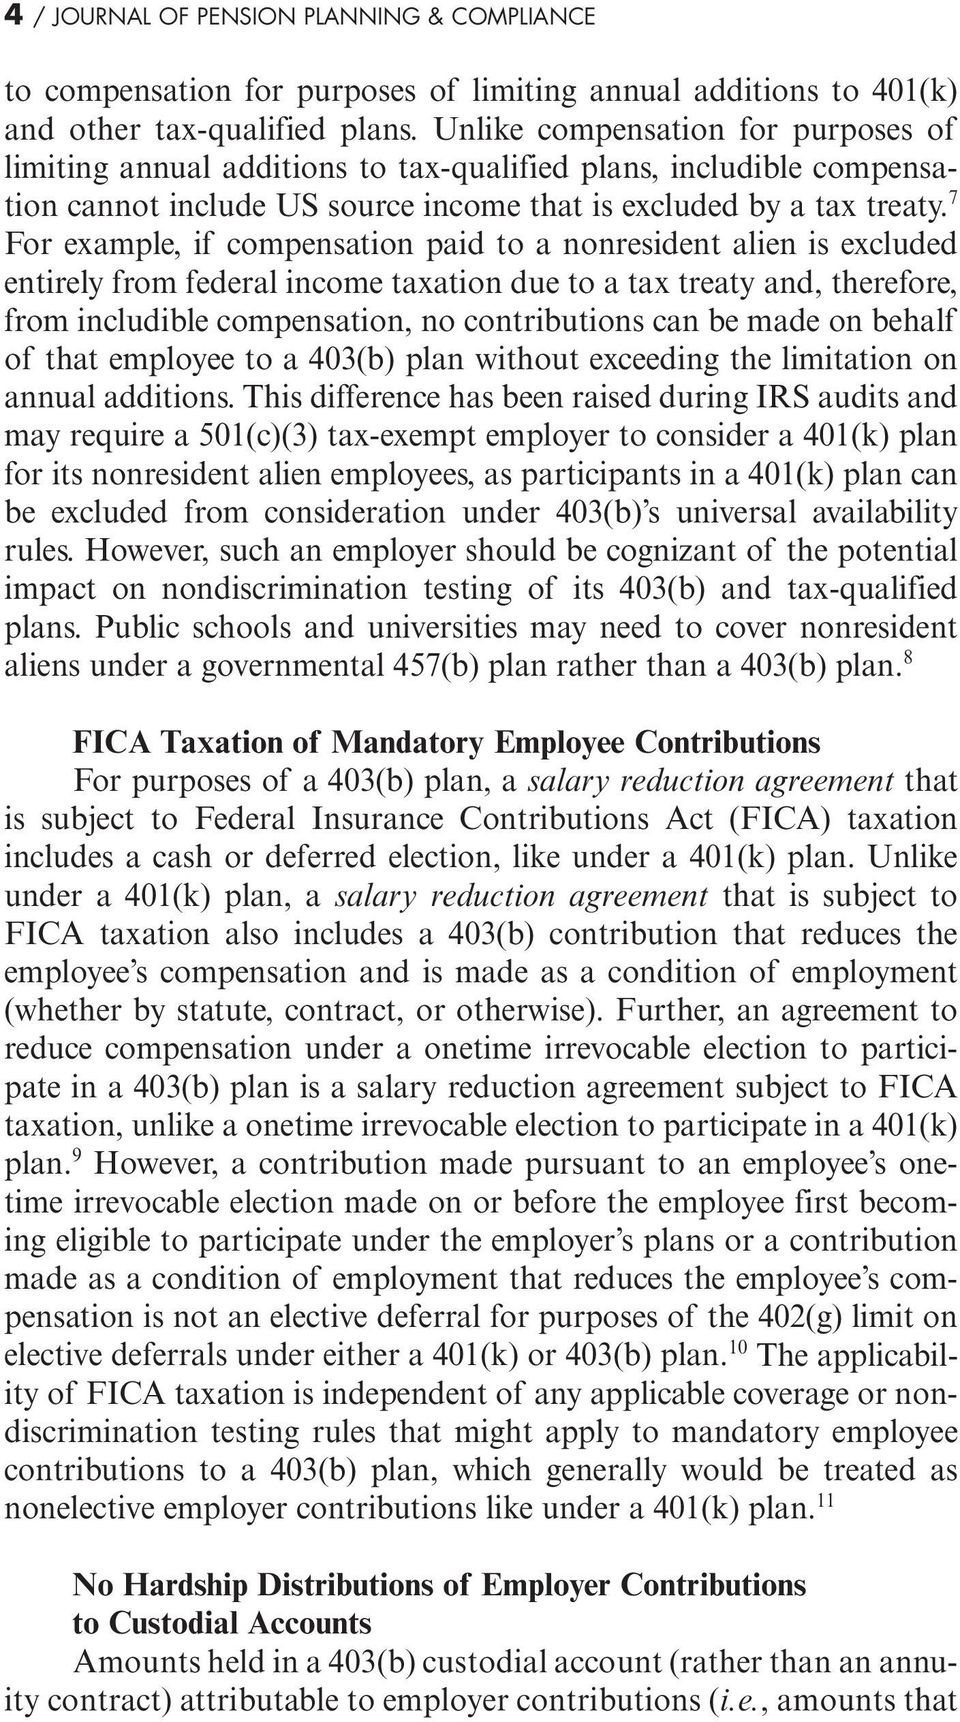 7 For example, if compensation paid to a nonresident alien is excluded entirely from federal income taxation due to a tax treaty and, therefore, from includible compensation, no contributions can be